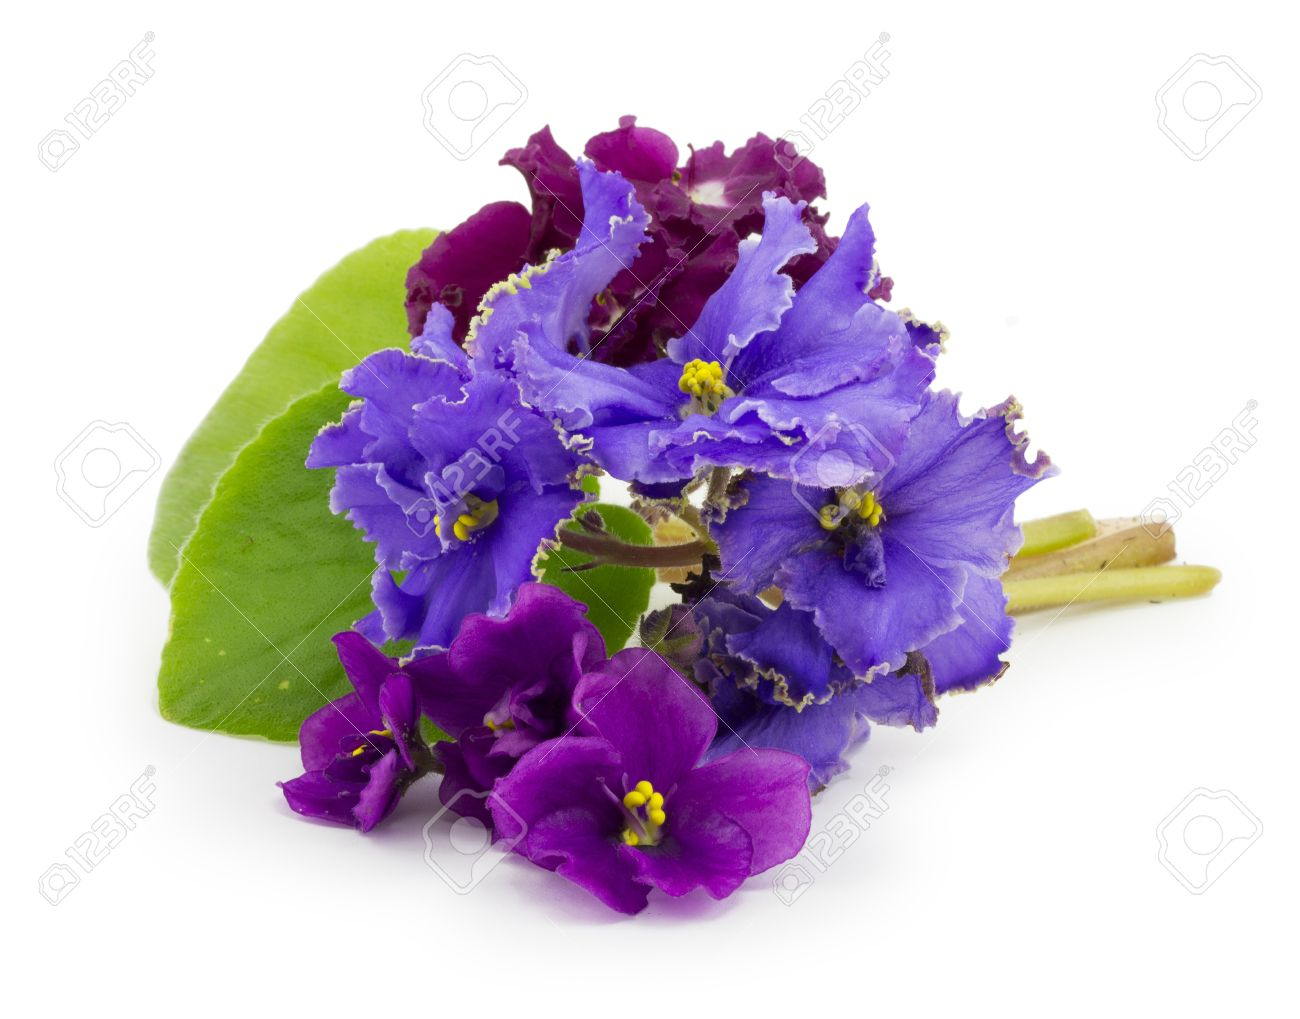 Violet flower isolated on white background stock photo picture violet flower isolated on white background stock photo 16424290 dhlflorist Image collections